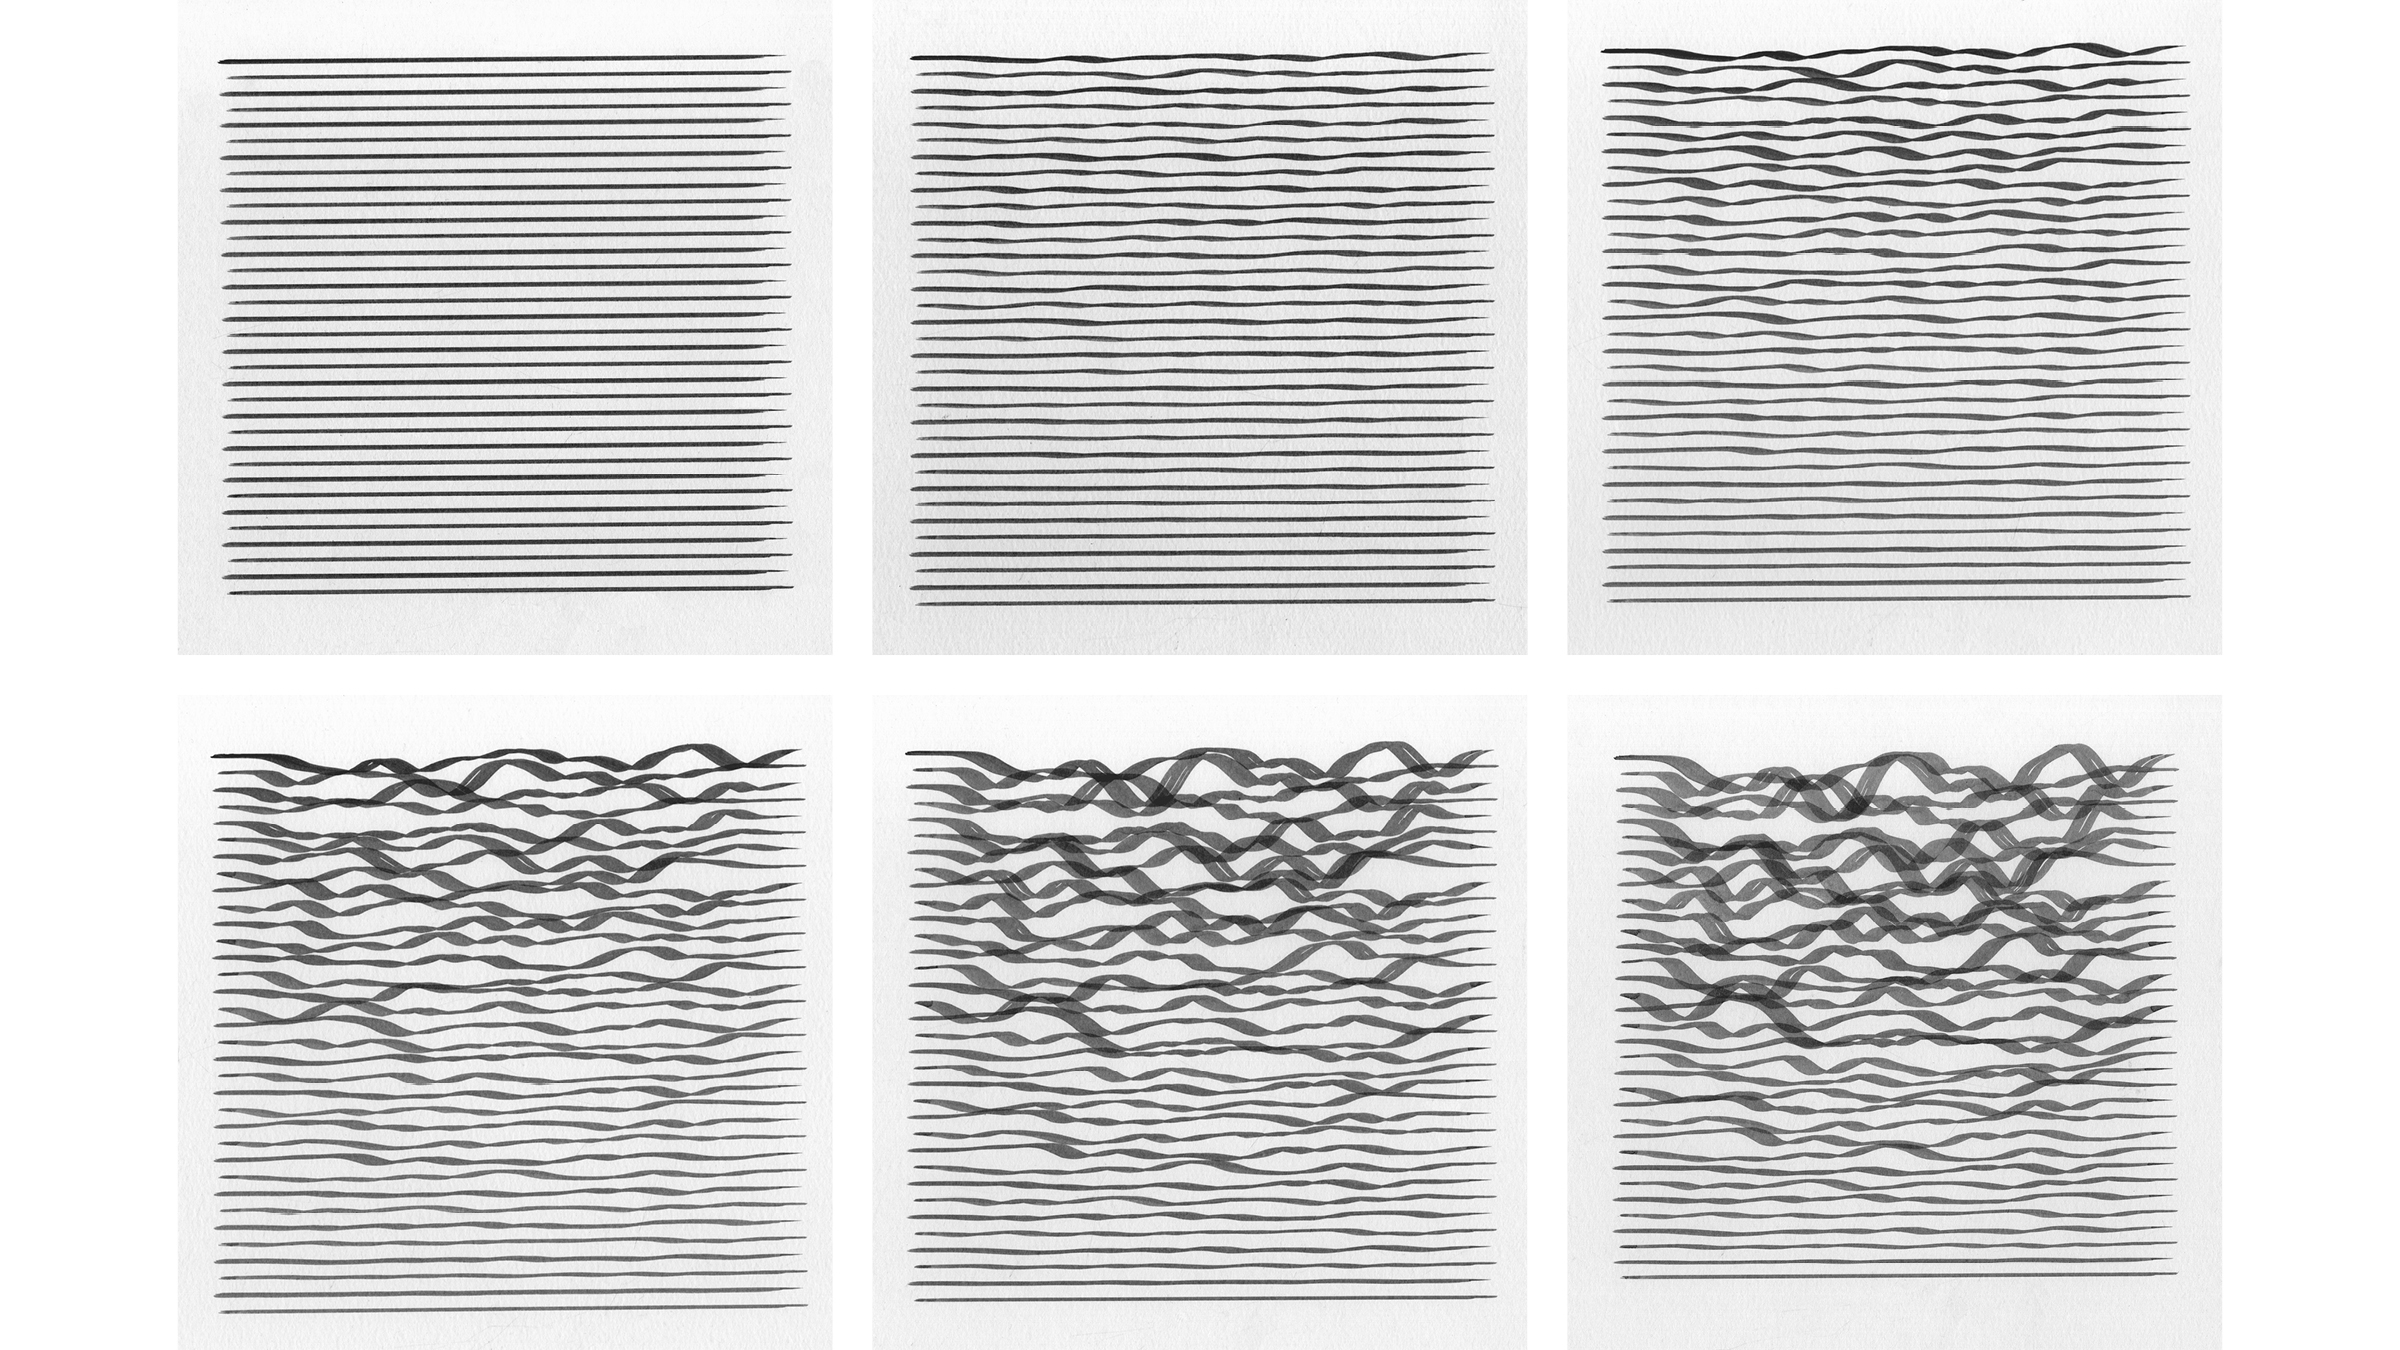 Waves , Seed 70, Increments 0 to 100